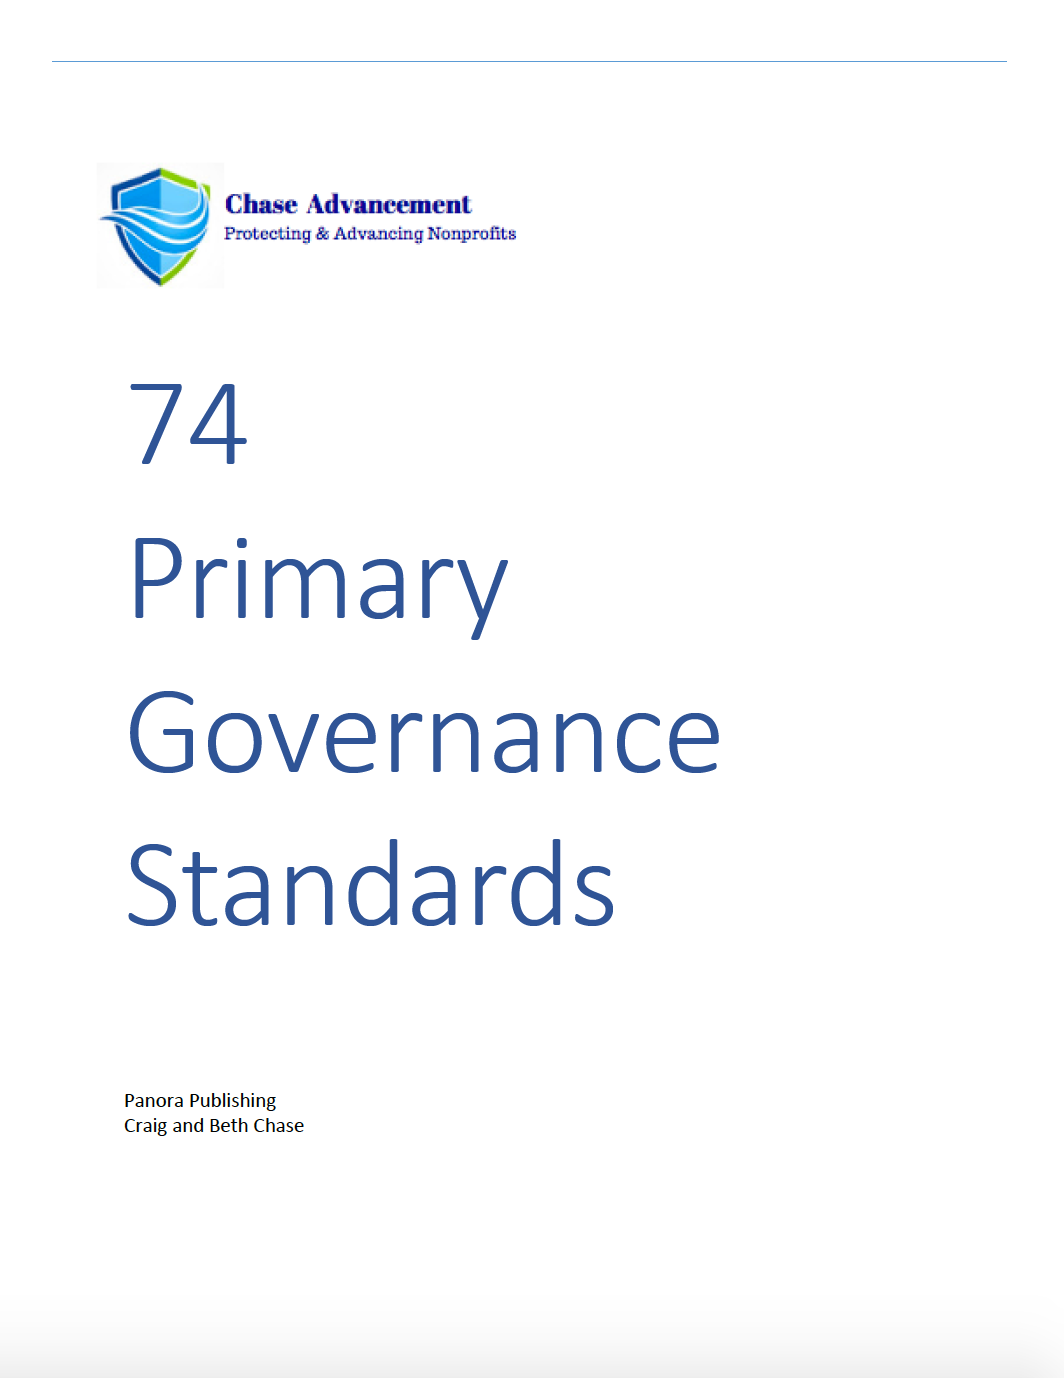 Products pmc network this brand new tool contains 74 primary board governance standards established by the irs guide star and better business bureau fandeluxe Choice Image